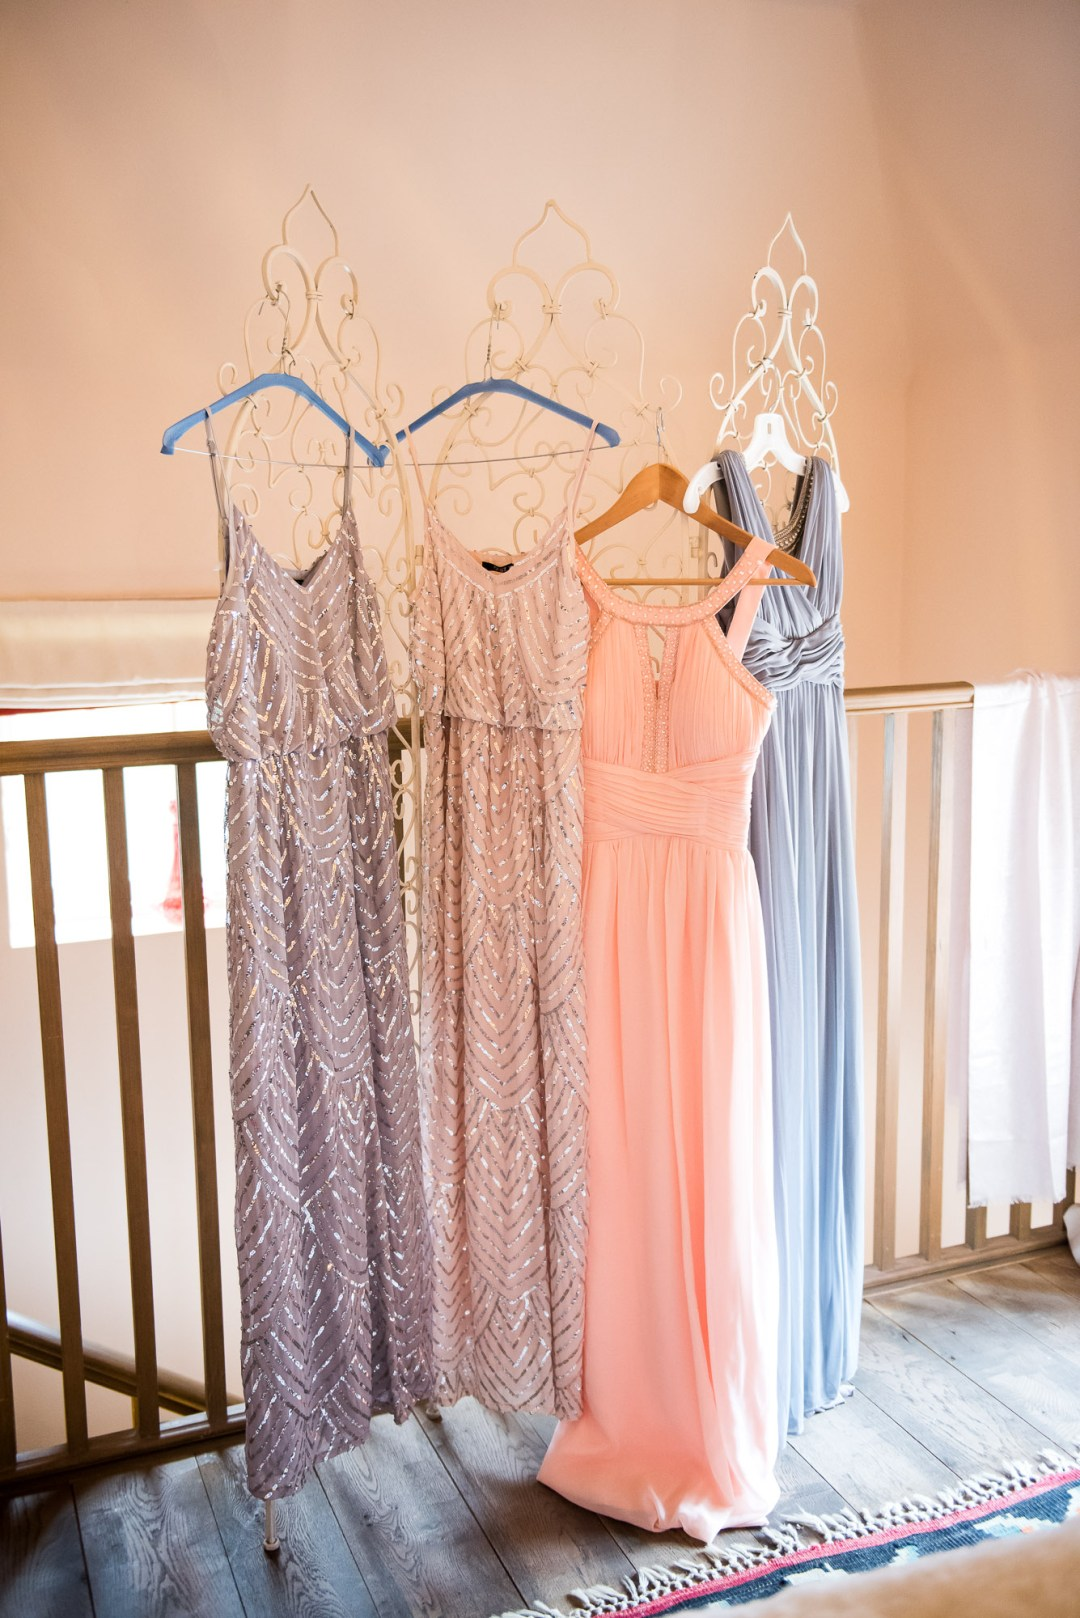 9 Bridesmaid dresses in matching pastel tones